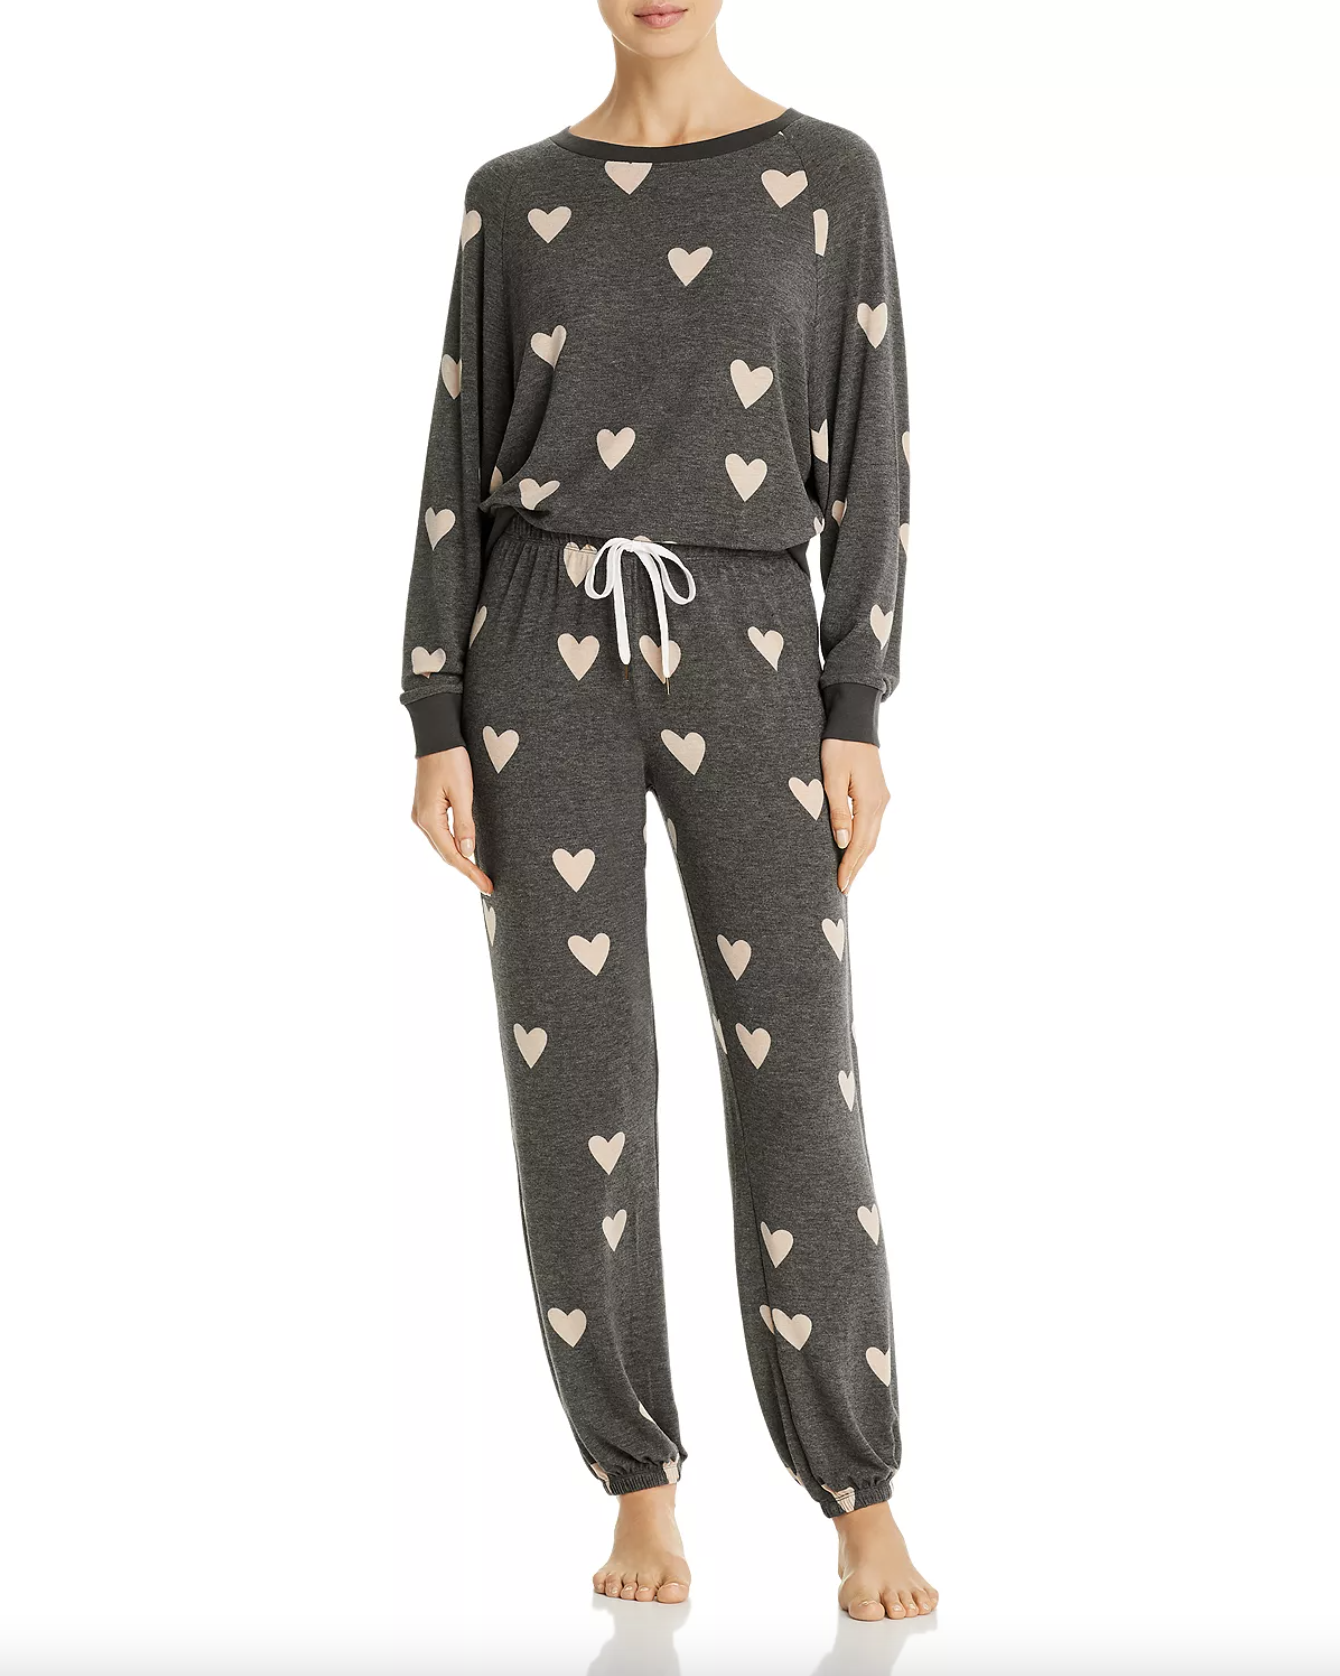 Honeydew Star Seeker Pajama Set